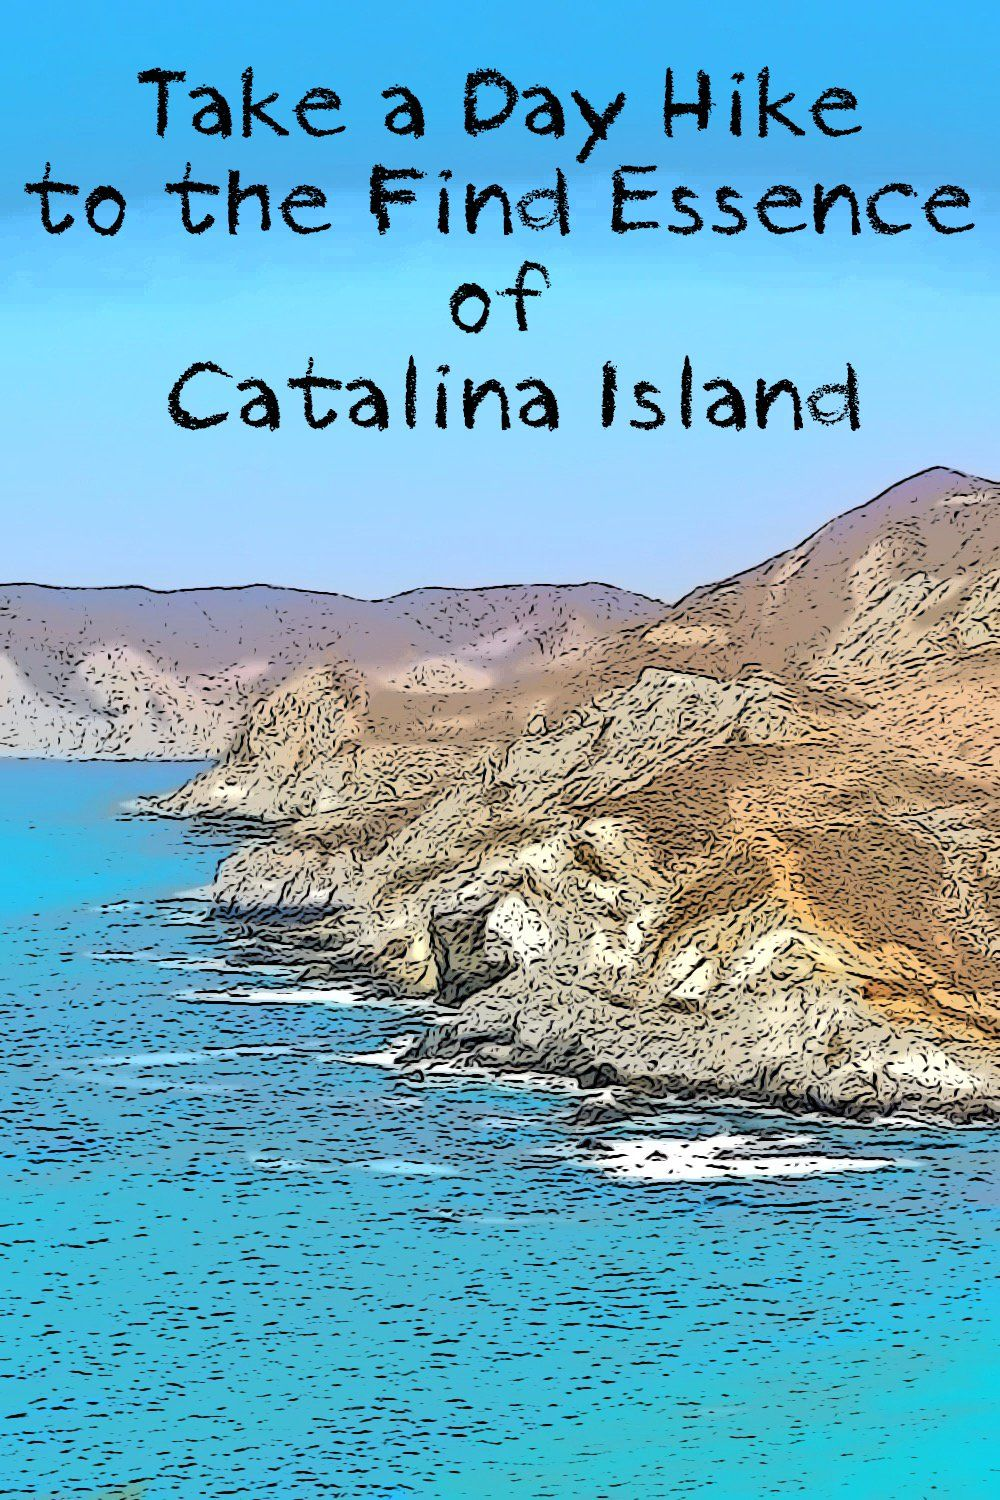 How to Take a Day Hike to the Find Essence of Catalina